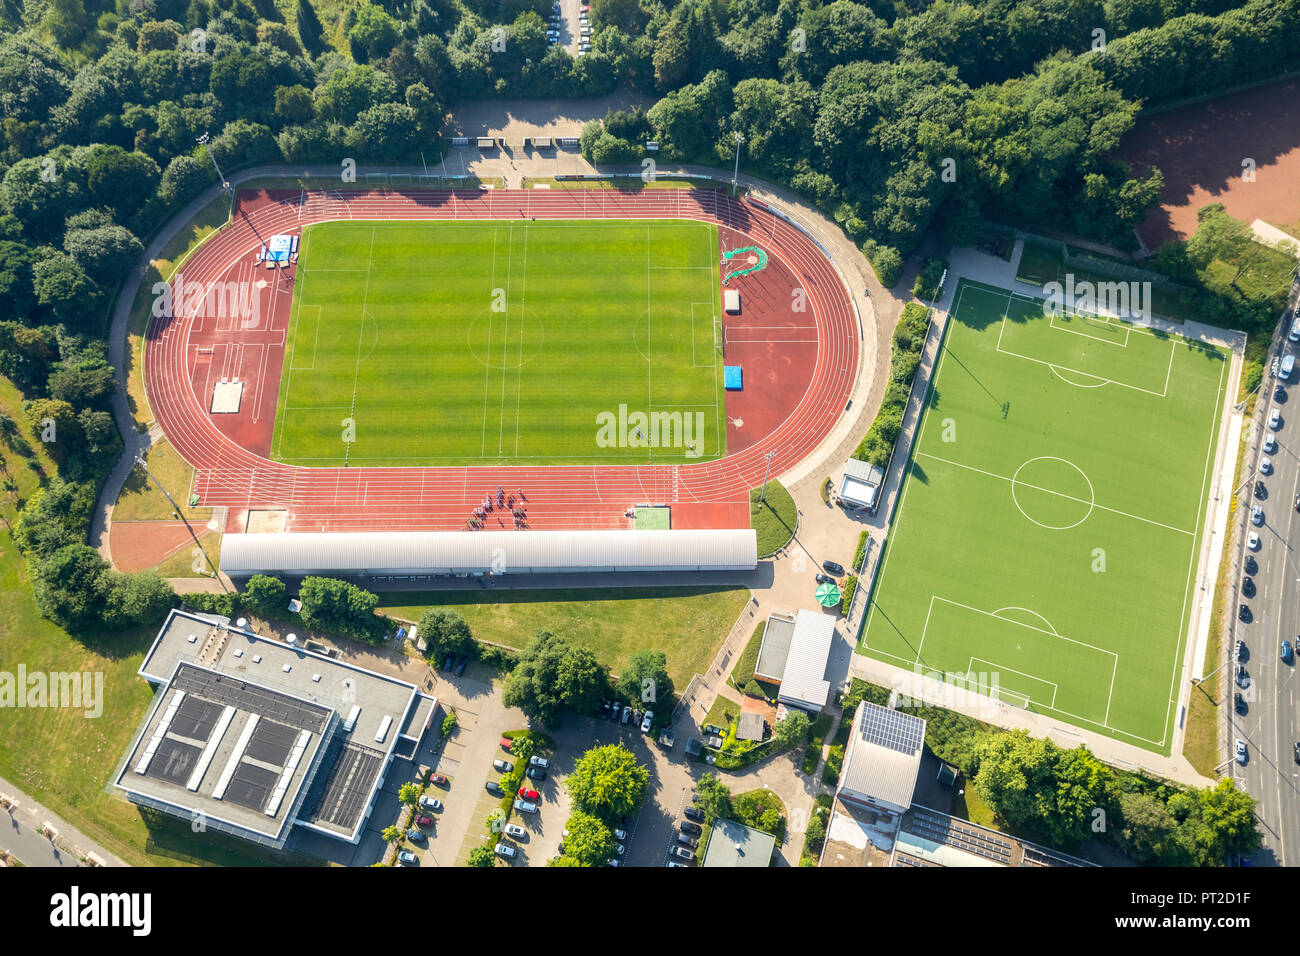 Competitions and organizer announcement on the red track in Jahnstadion Bottrop, Bundesjugendspiele, Bottrop, Ruhr area, North Rhine-Westphalia, Germany - Stock Image